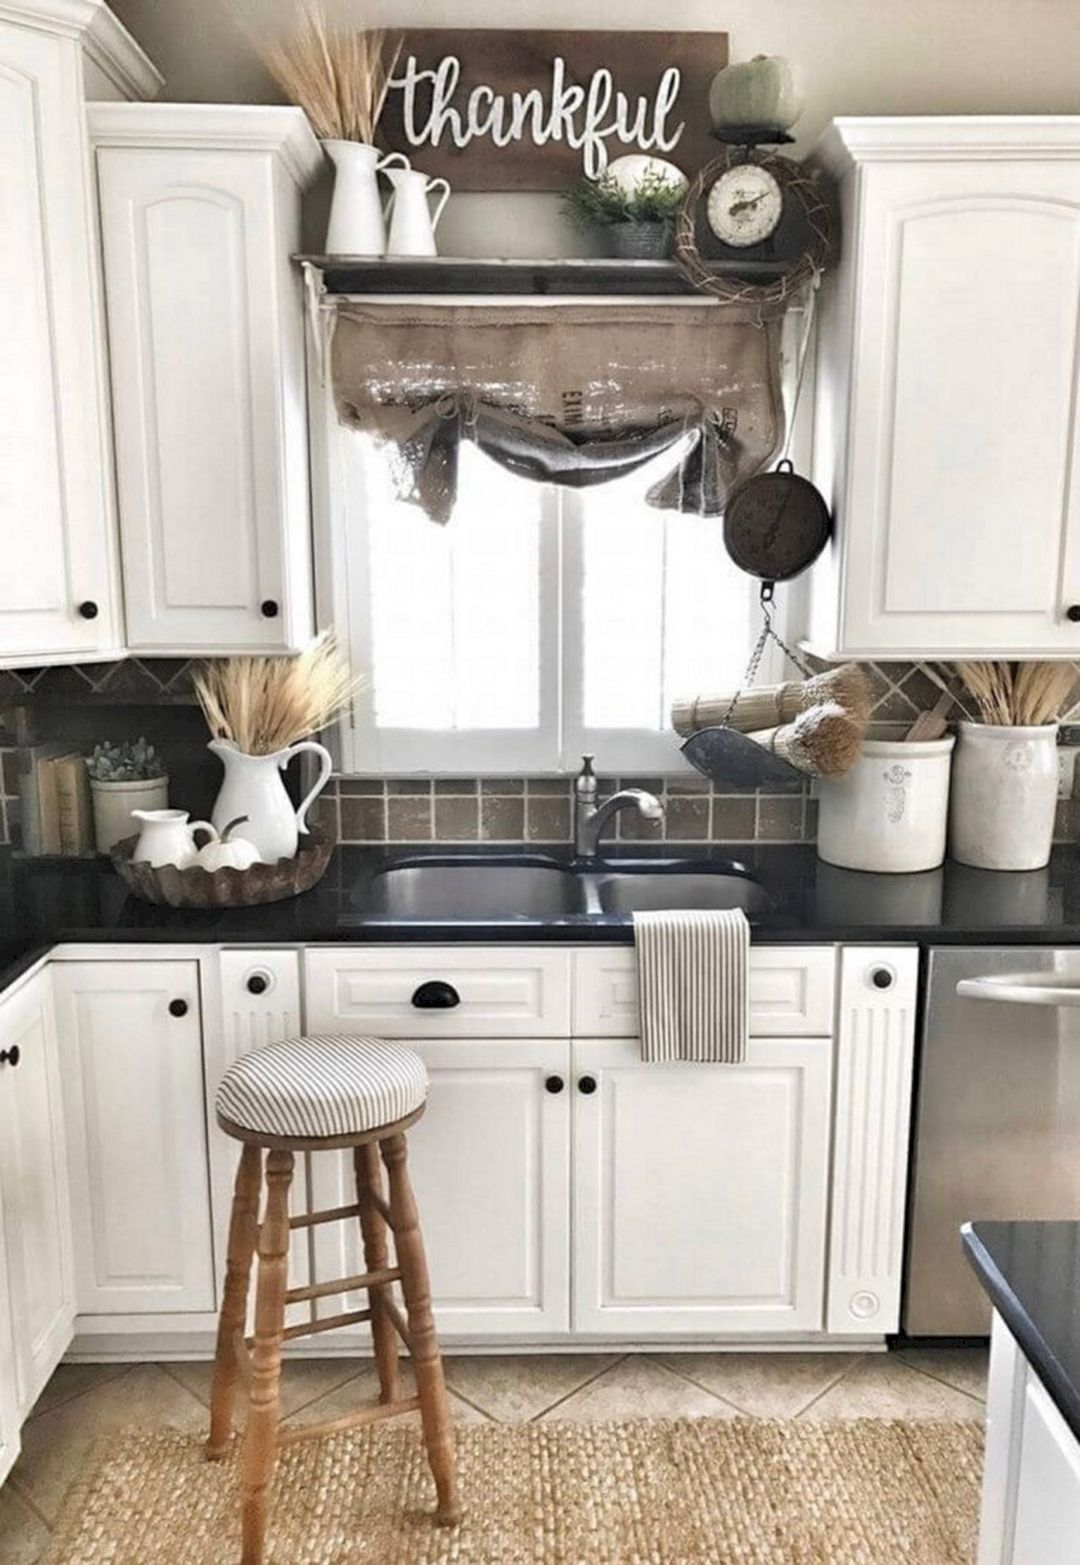 Best Farmhouse Style Ideas : 47+ Rustic Home Decor | Farmhouse style ...